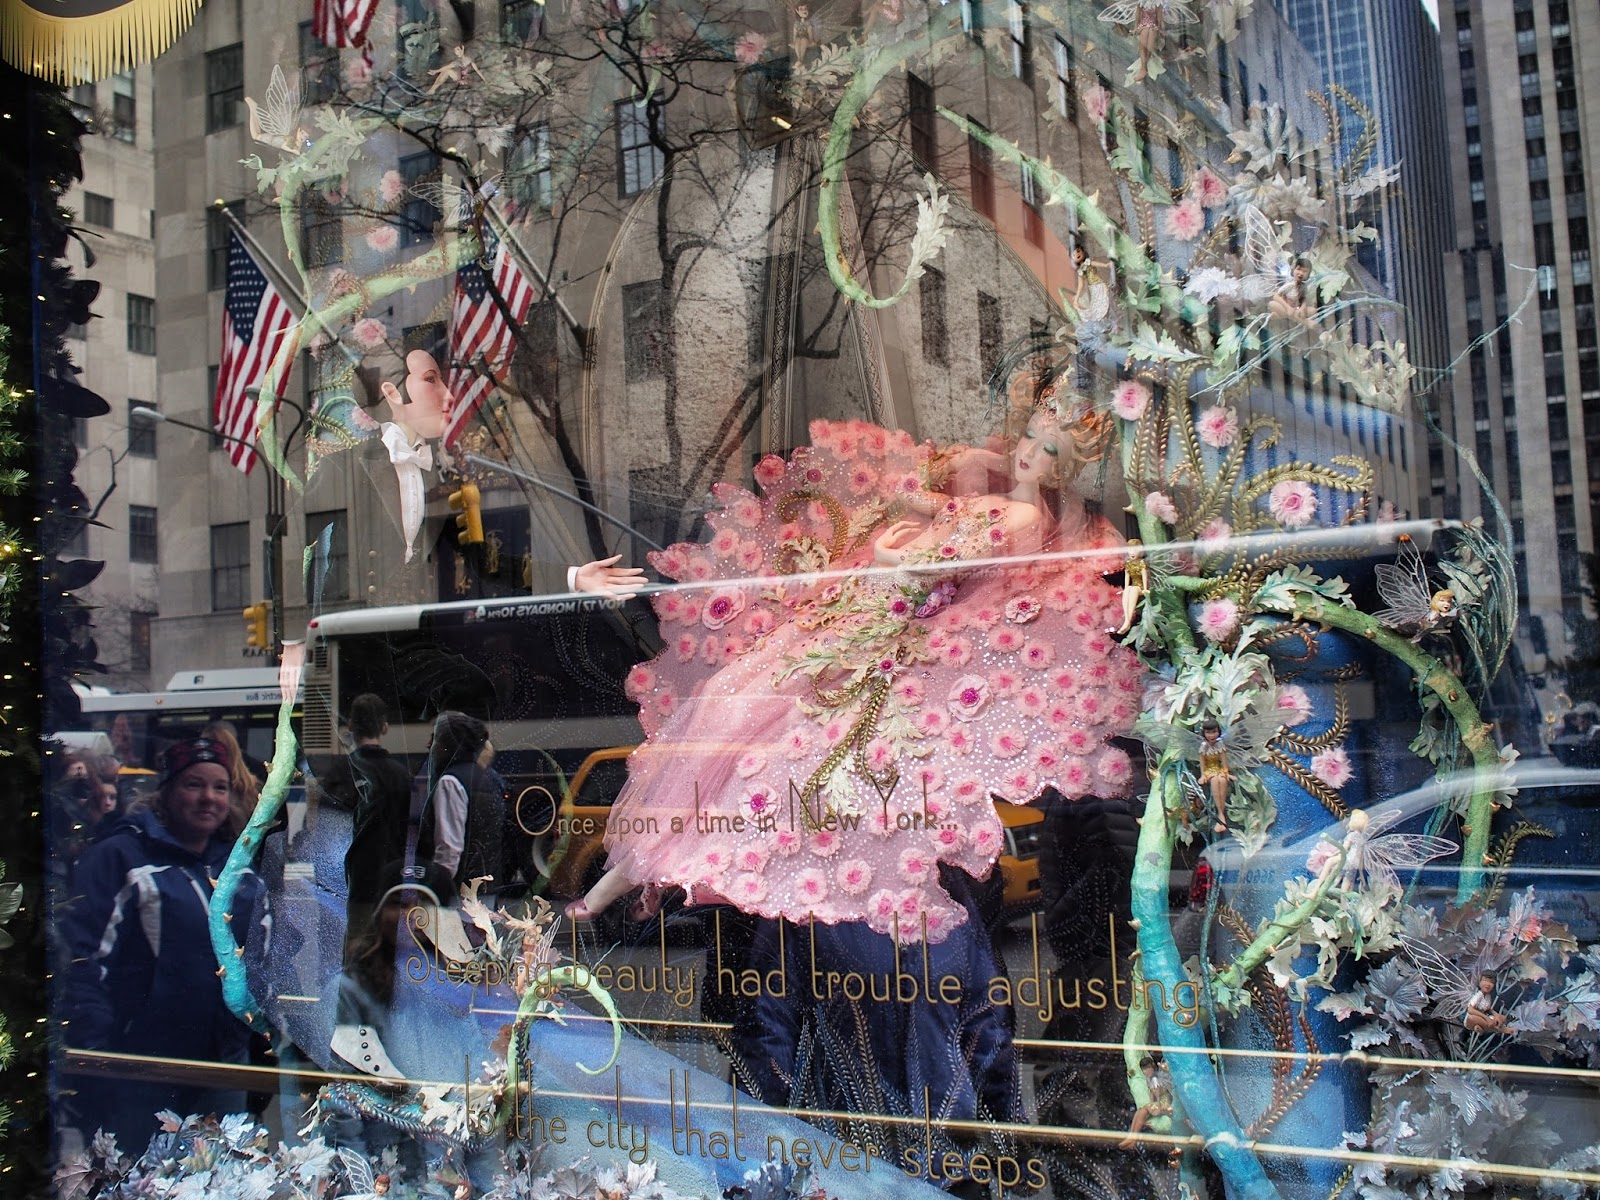 Asleep in the Big City #asleepinthebigcity #anenchantedexperience #nyc #Saks #Saksholiday ©2014 Nancy Lundebjerg